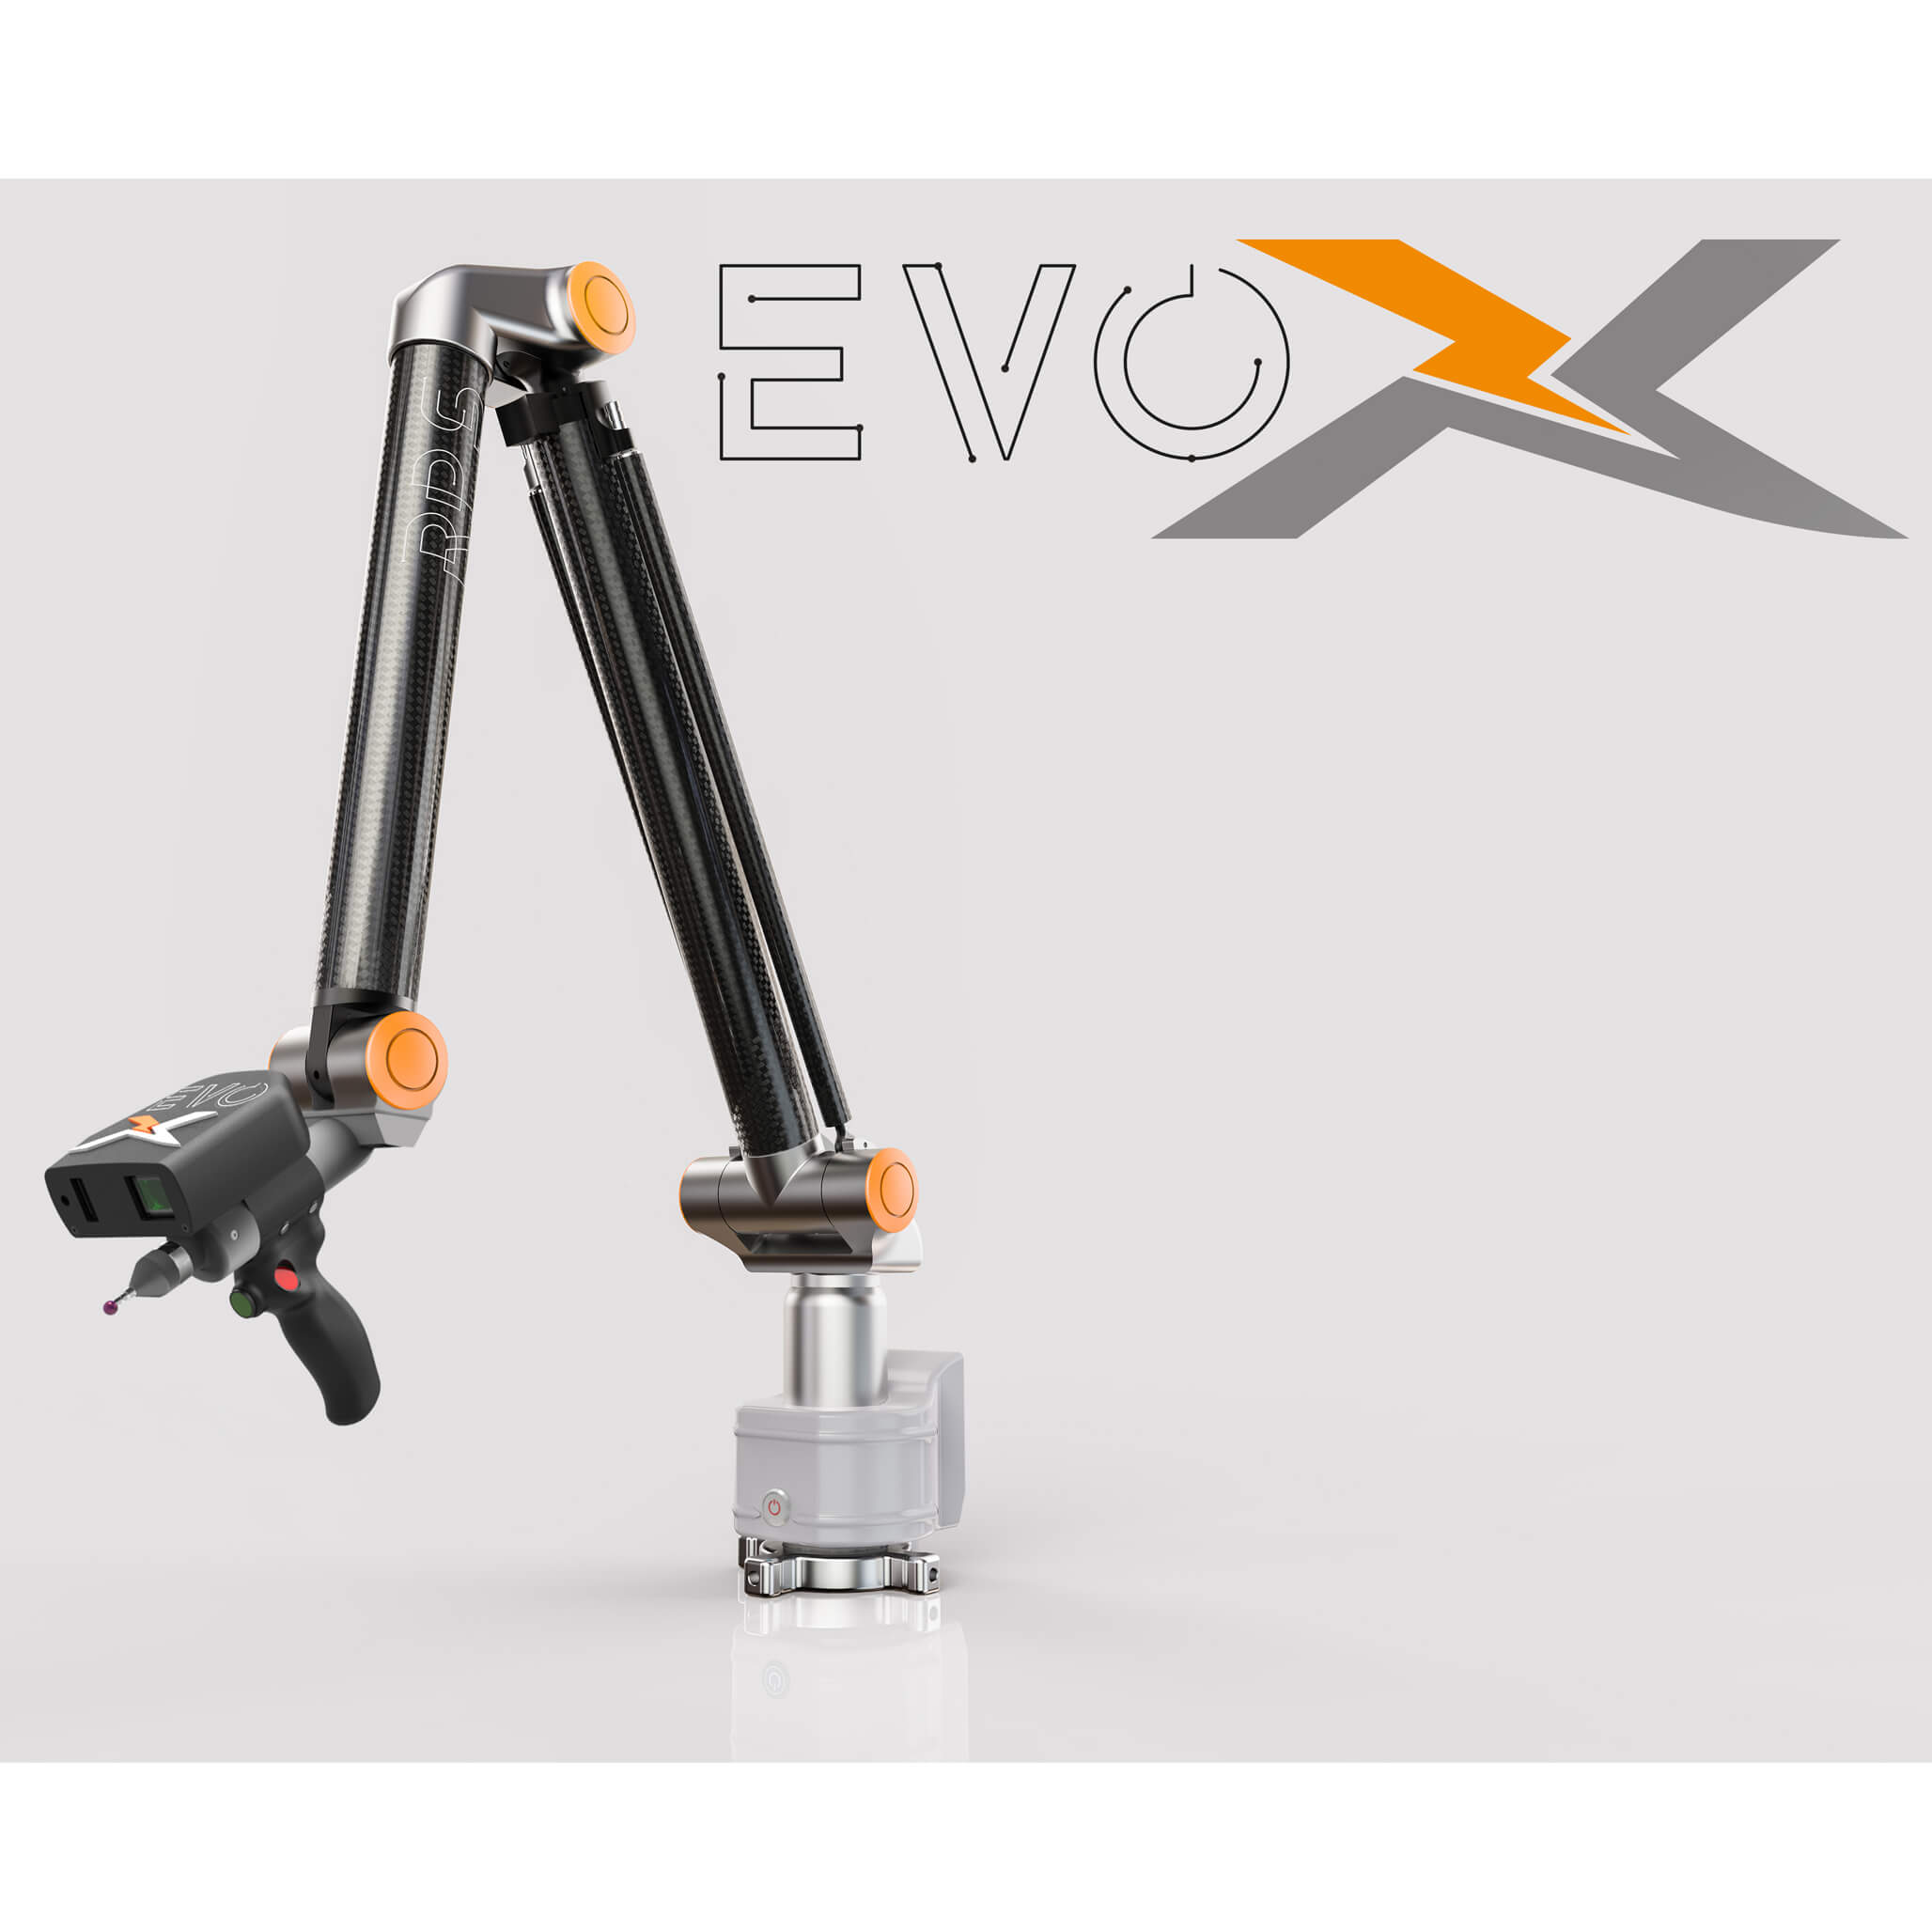 EVO X Articulated Measuring Arm With Laser and Touch probe